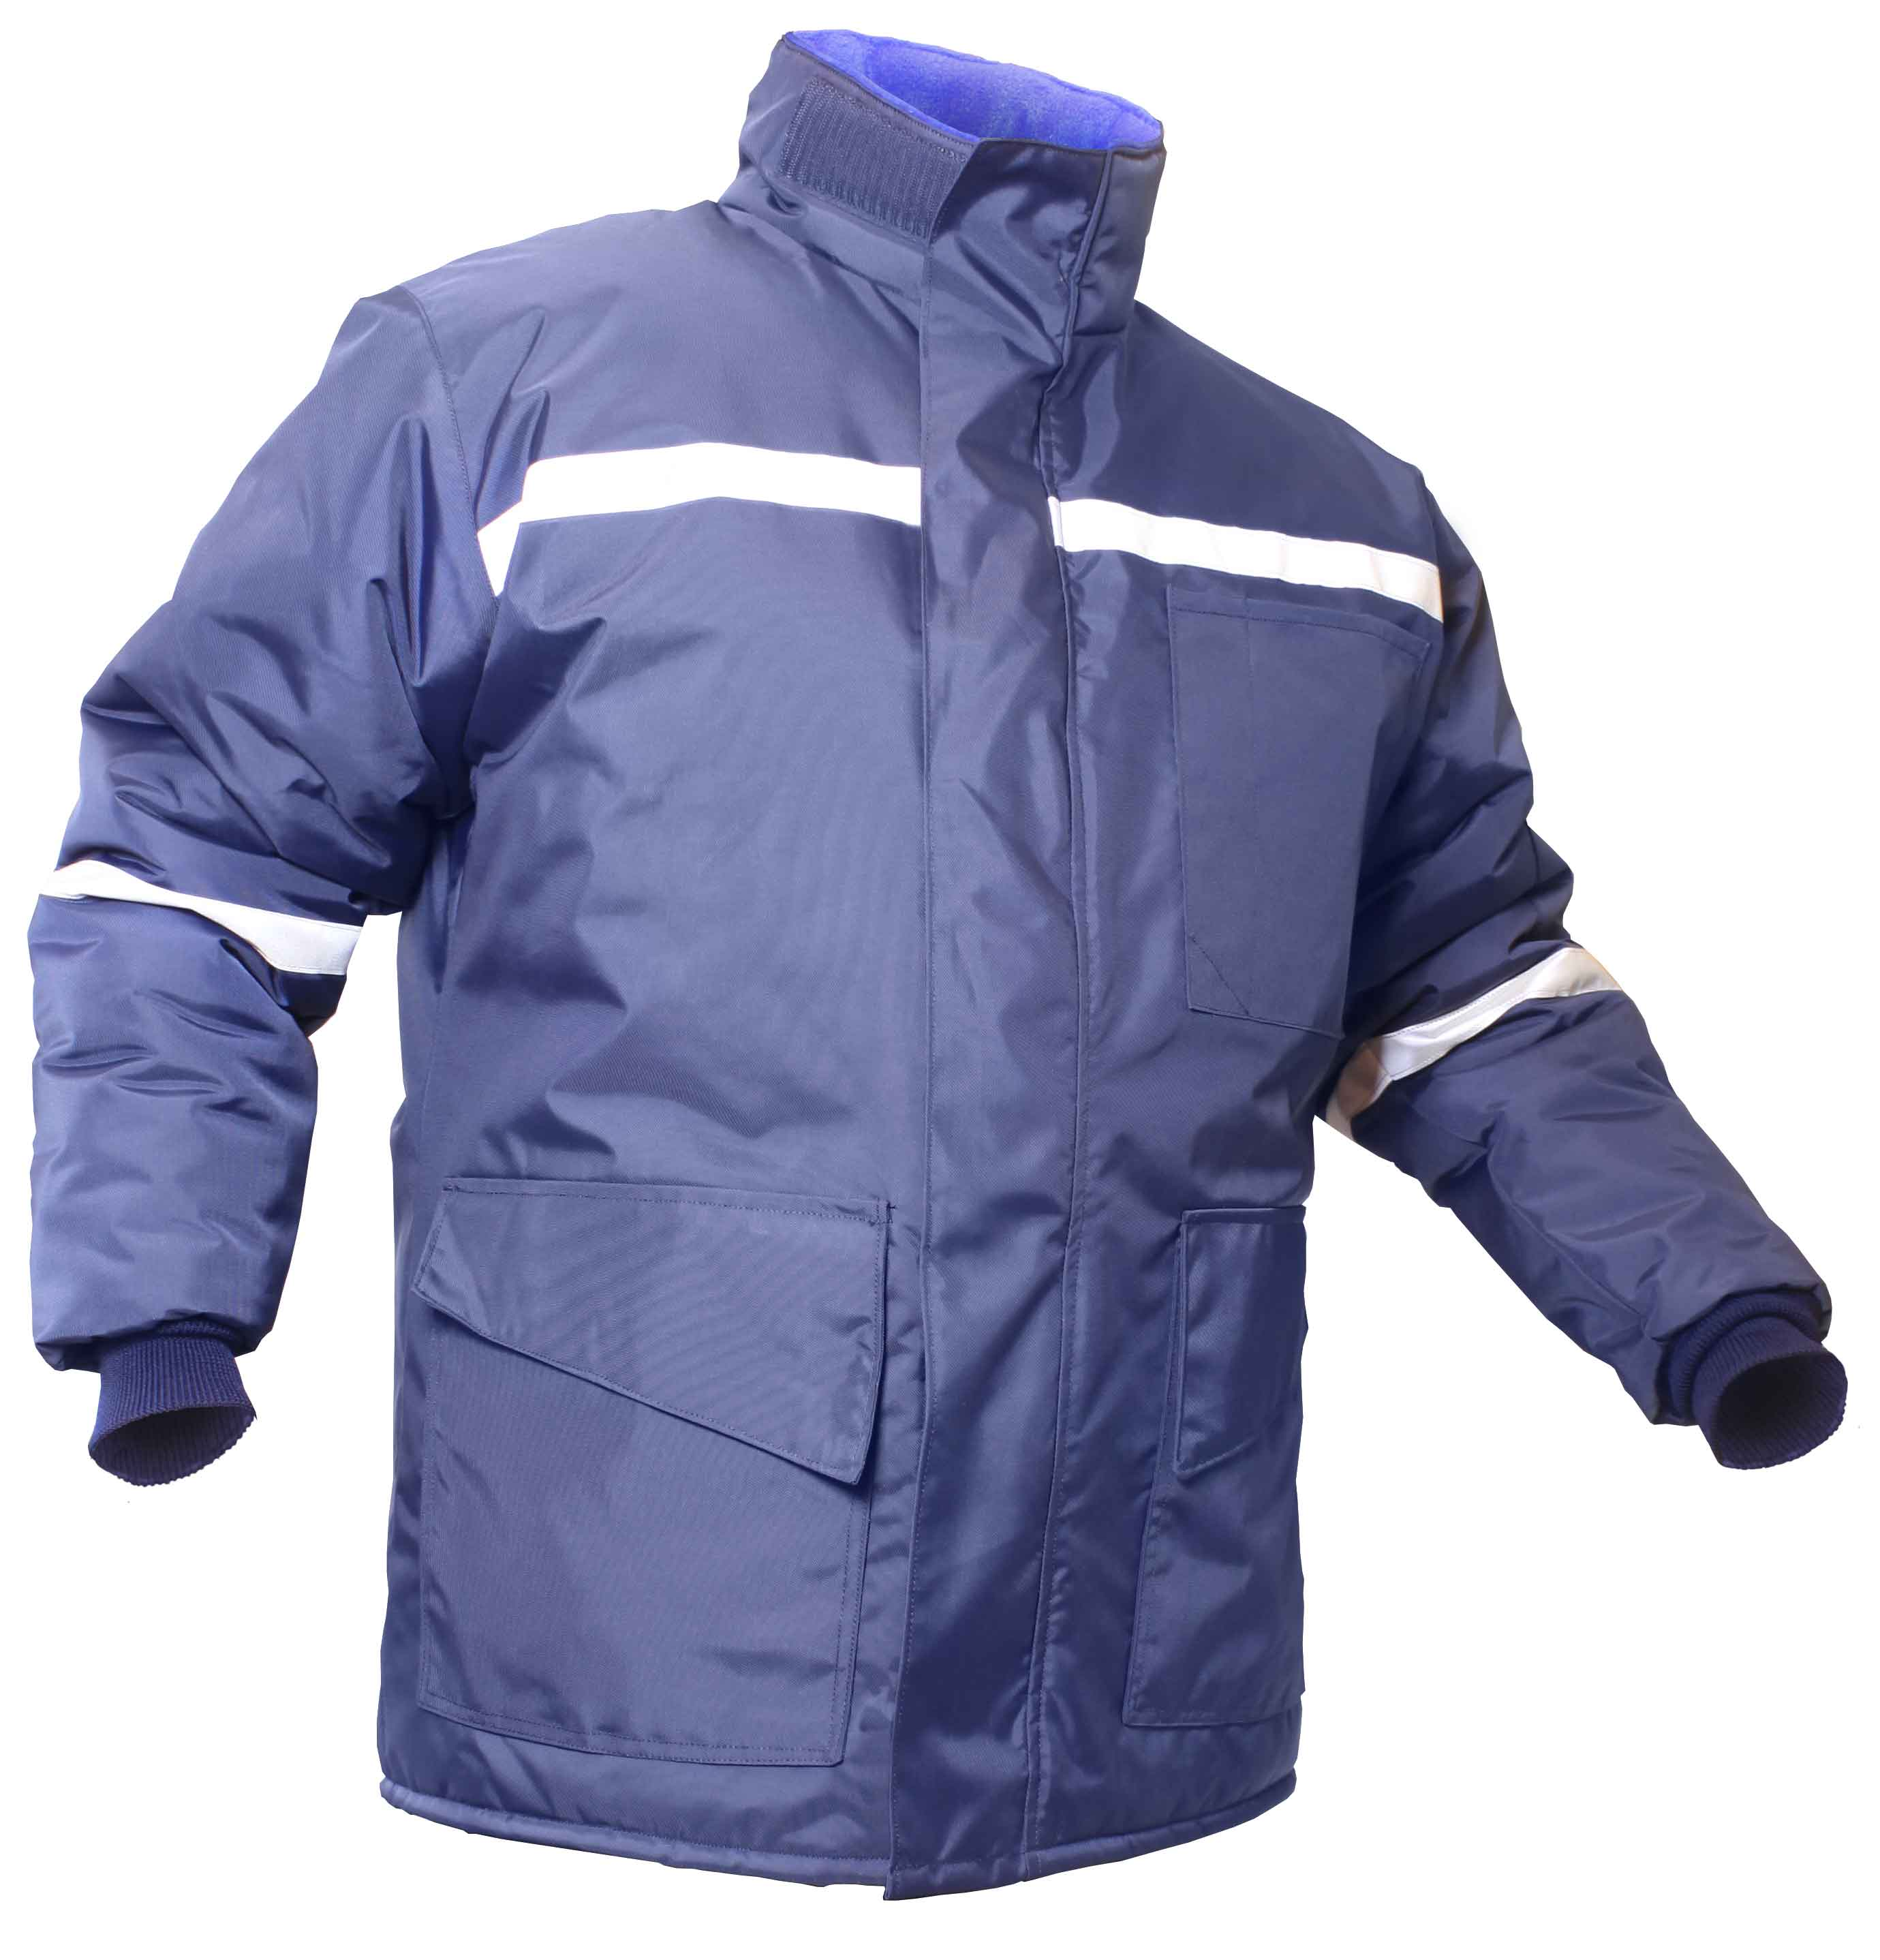 Cocoon Cold Store Jacket Delf Work Wear Clothing